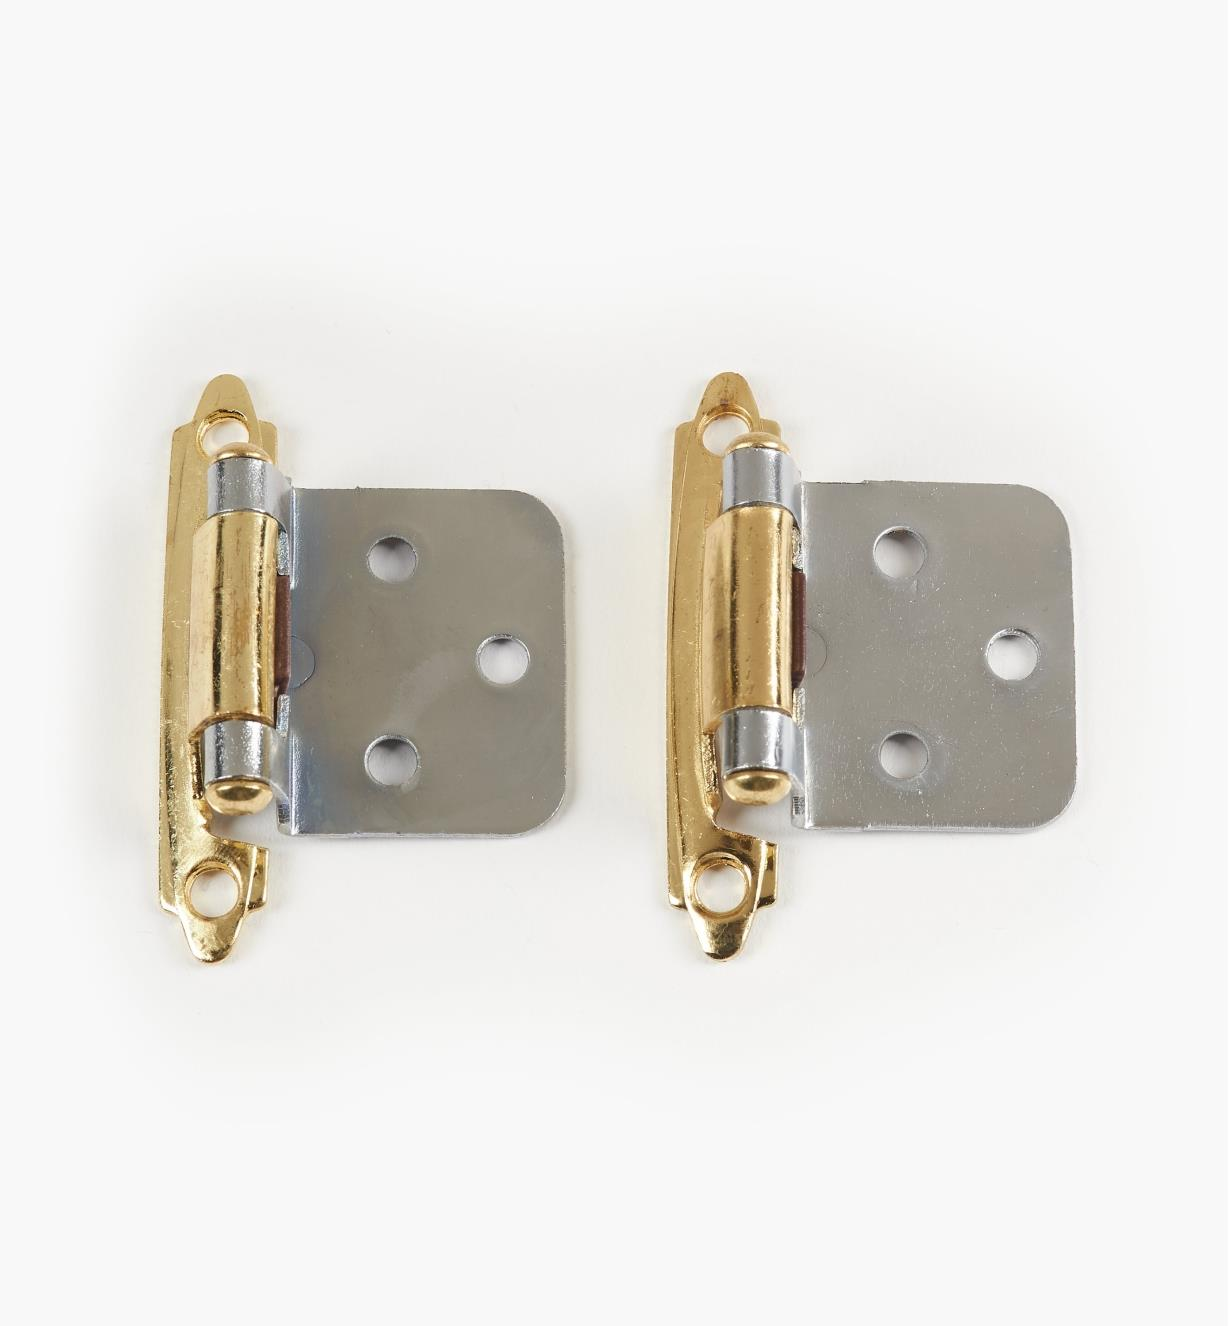 99X0173 - Belwith Self-Closing Flush-Mount Hinges, Brass-with-Chrome, pkg. of 10 pairs